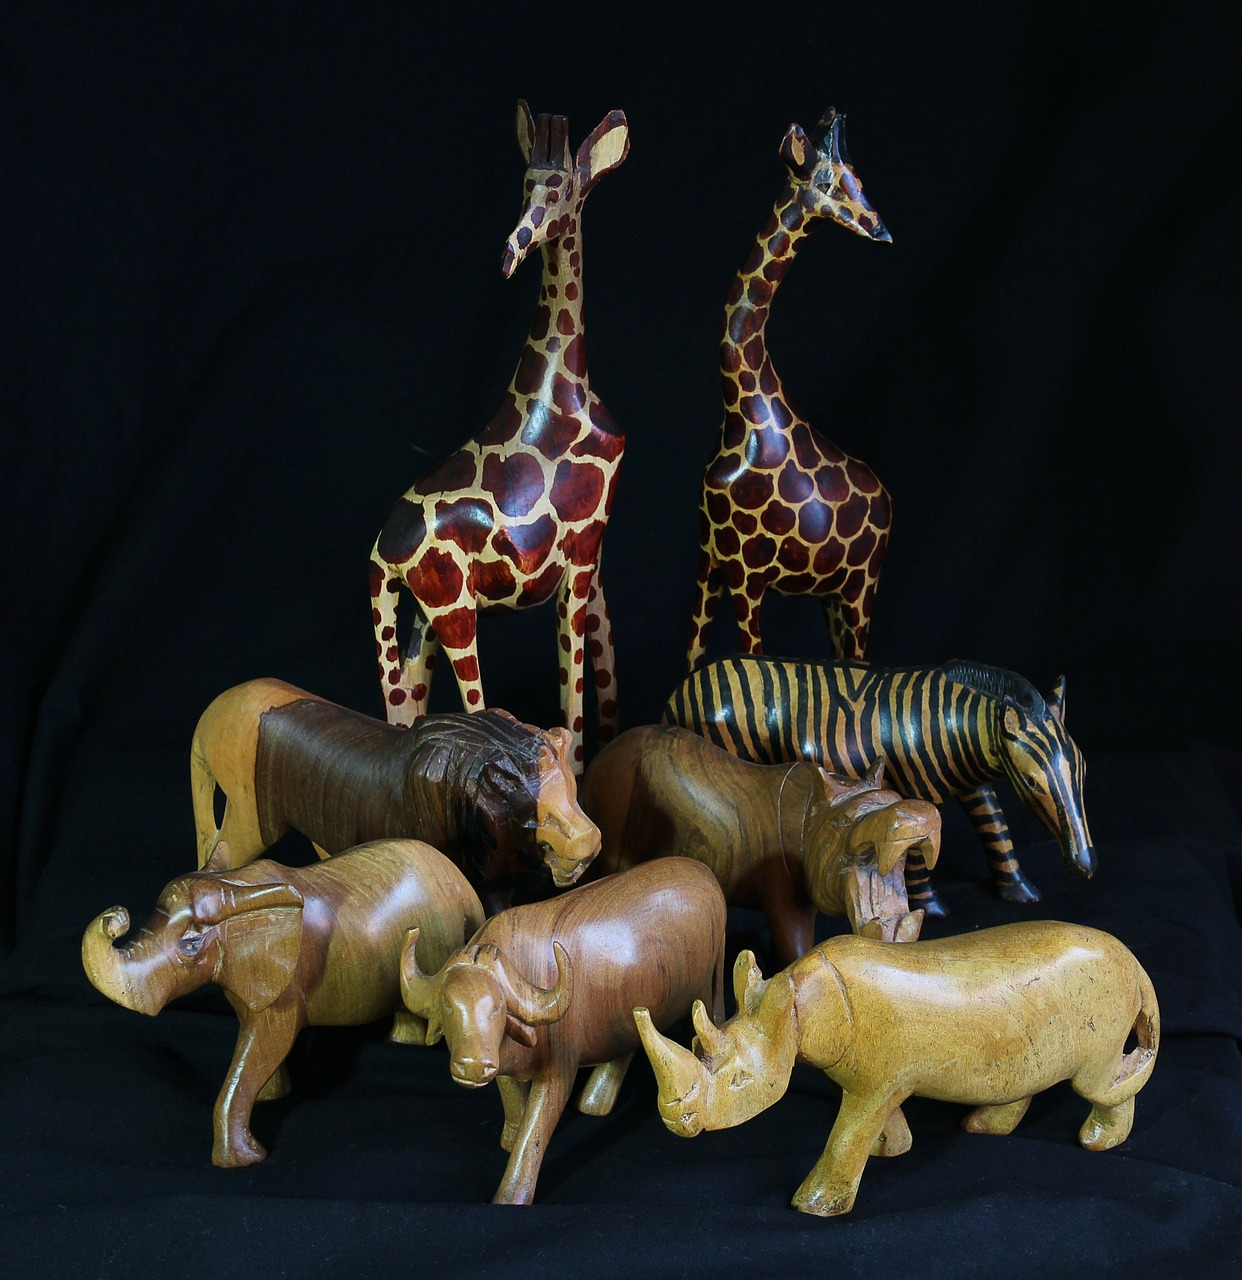 wooden toys souvenirs africa free photo